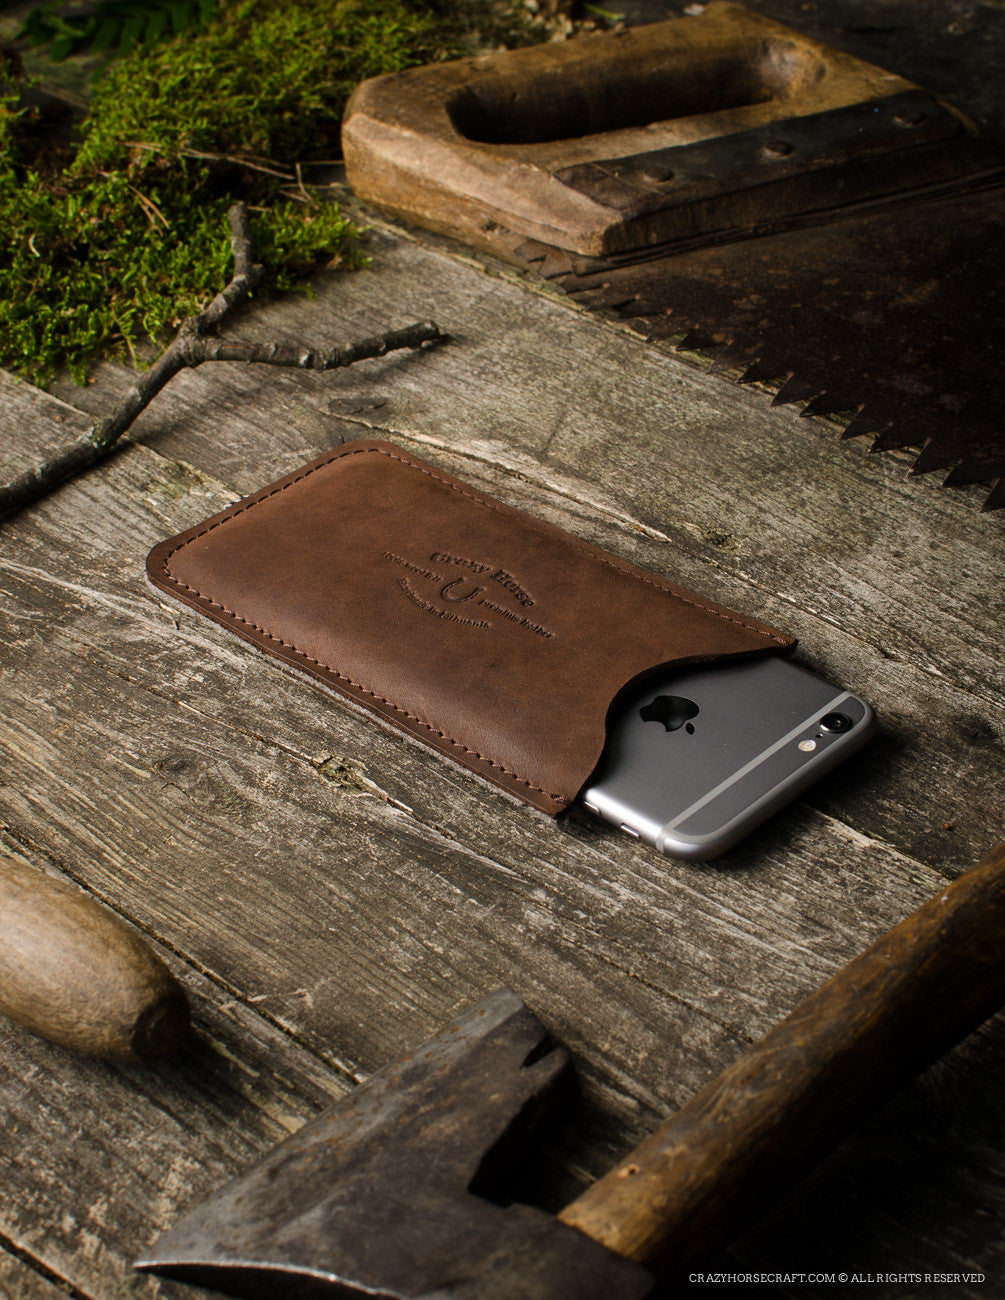 Leather iPhone Case With Card Pocket | Wood Brown with iphone 6s inside